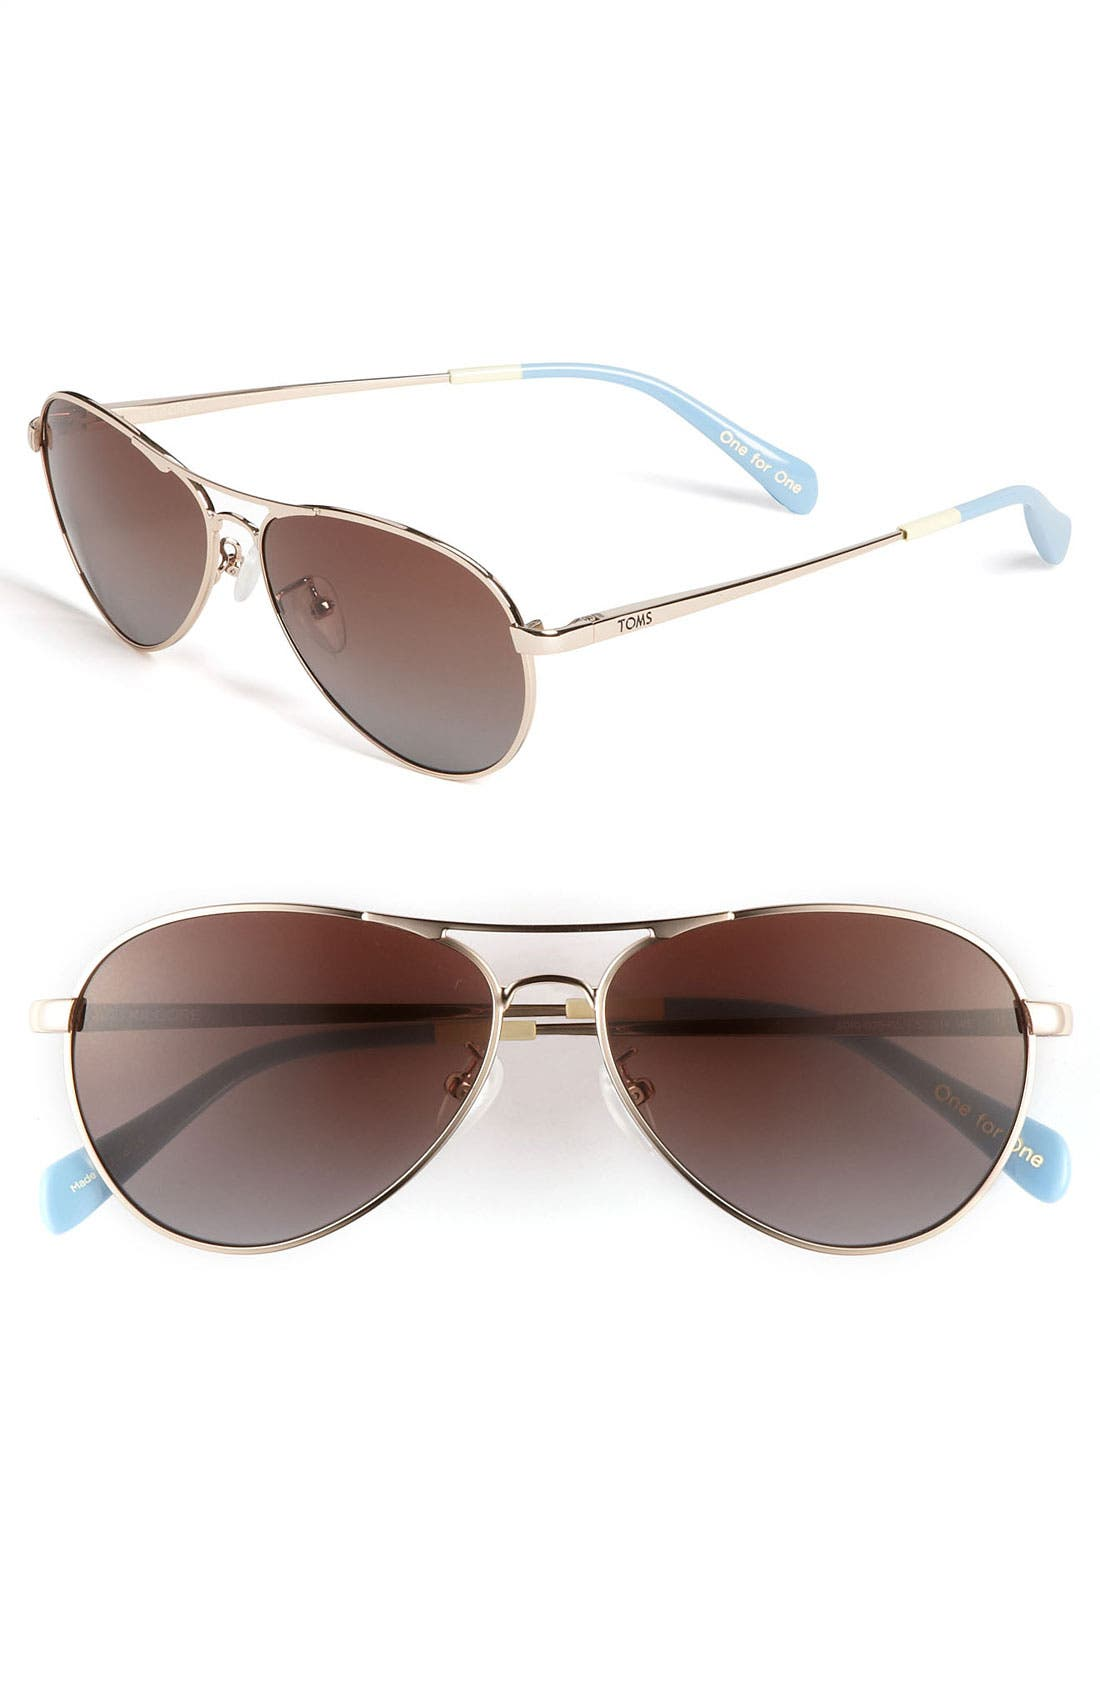 Main Image - TOMS 'Kilgore' 57mm Polarized Aviator Sunglasses